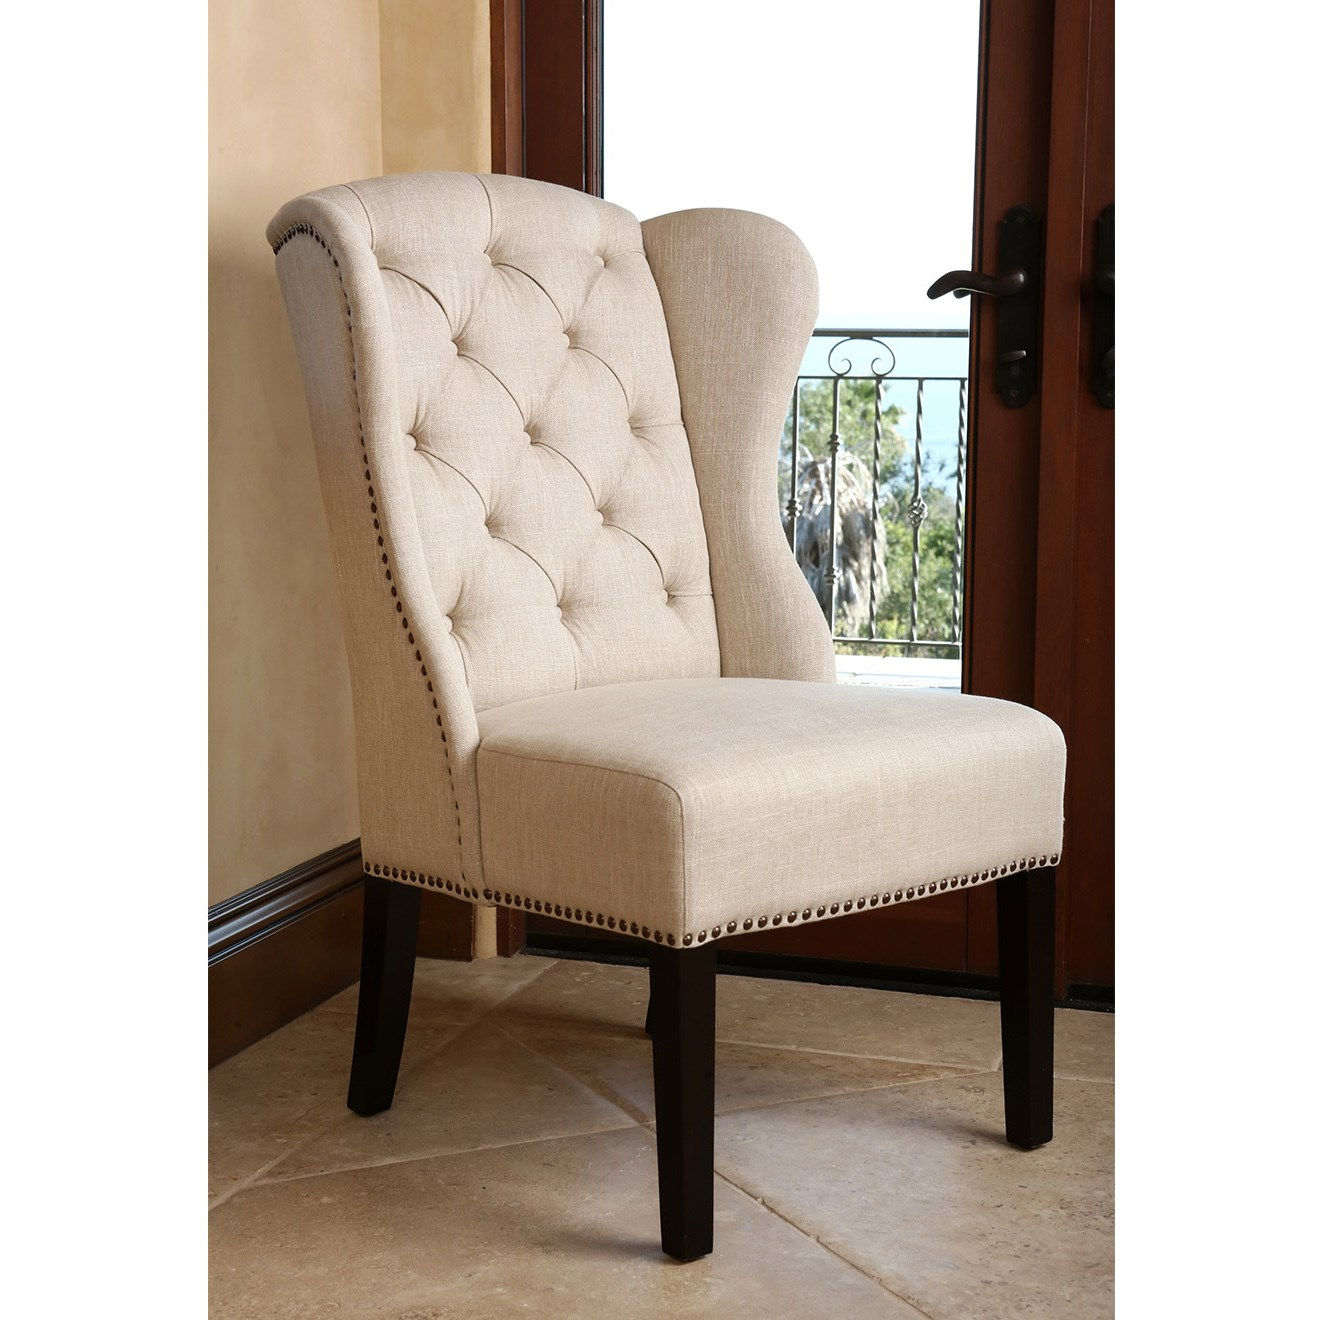 Discount Dining Chairs | Tufted Dining Chair | Kohls Chairs